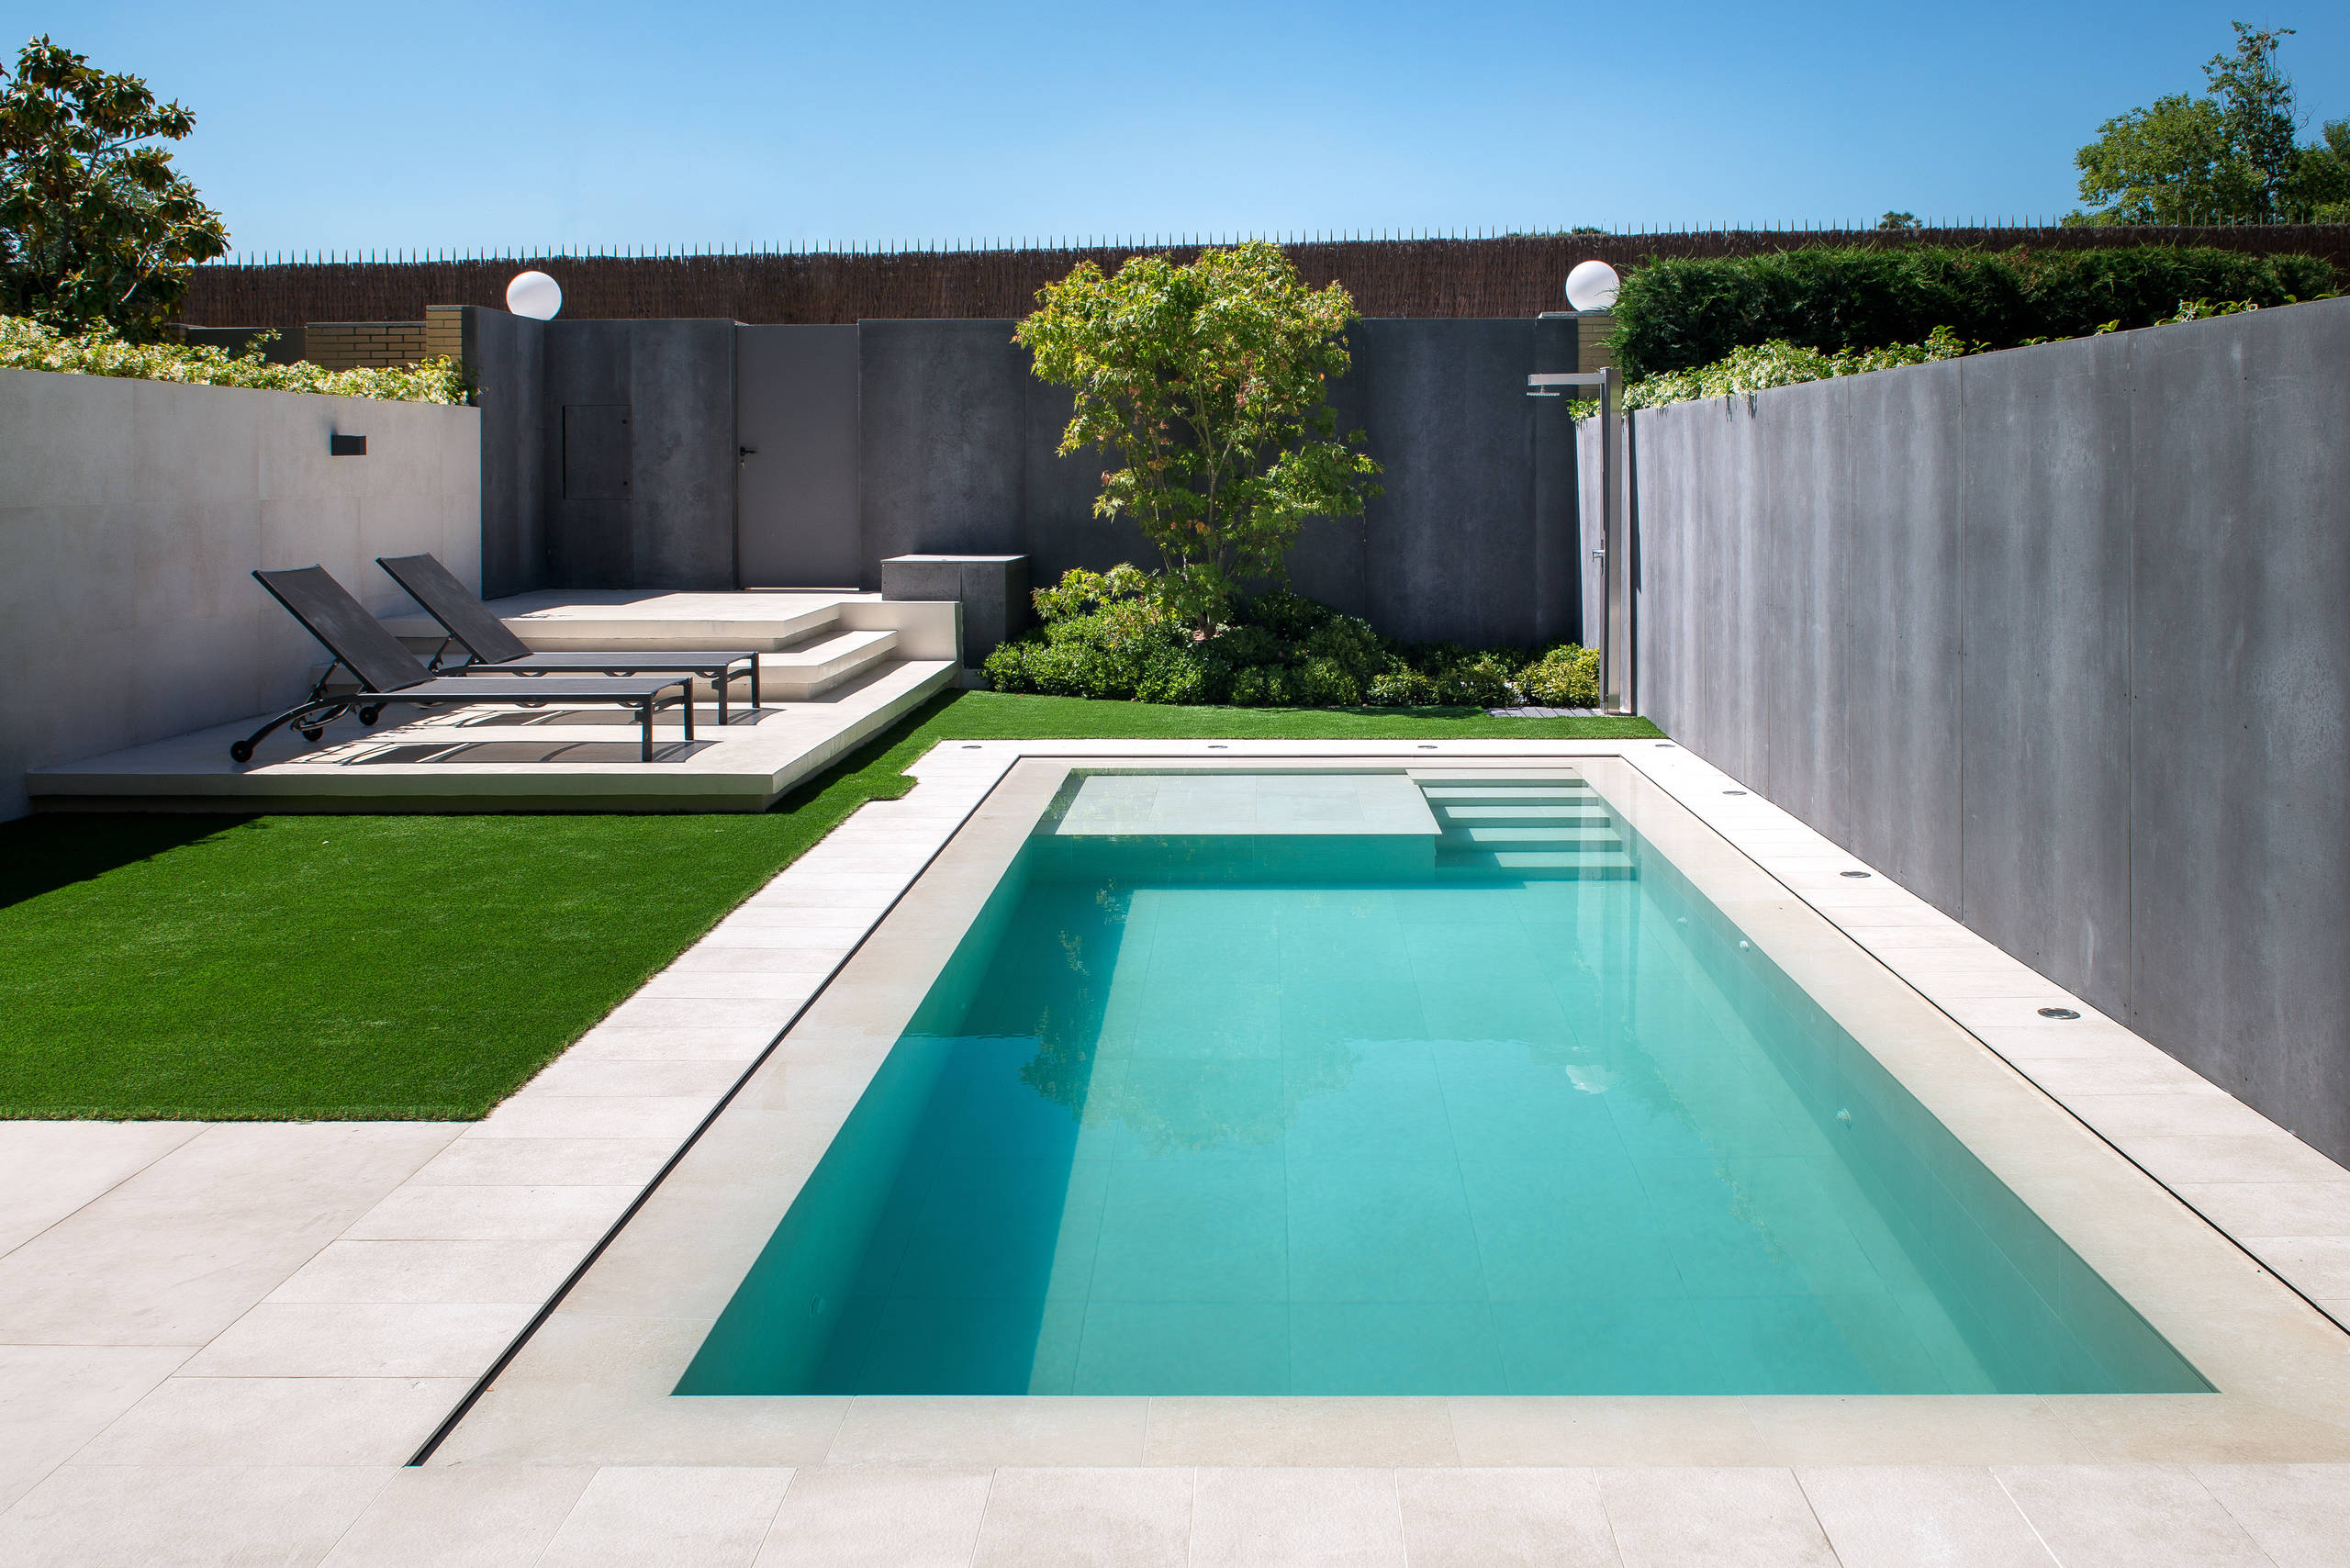 75 Beautiful Small Pool House Pictures Ideas November 2020 Houzz